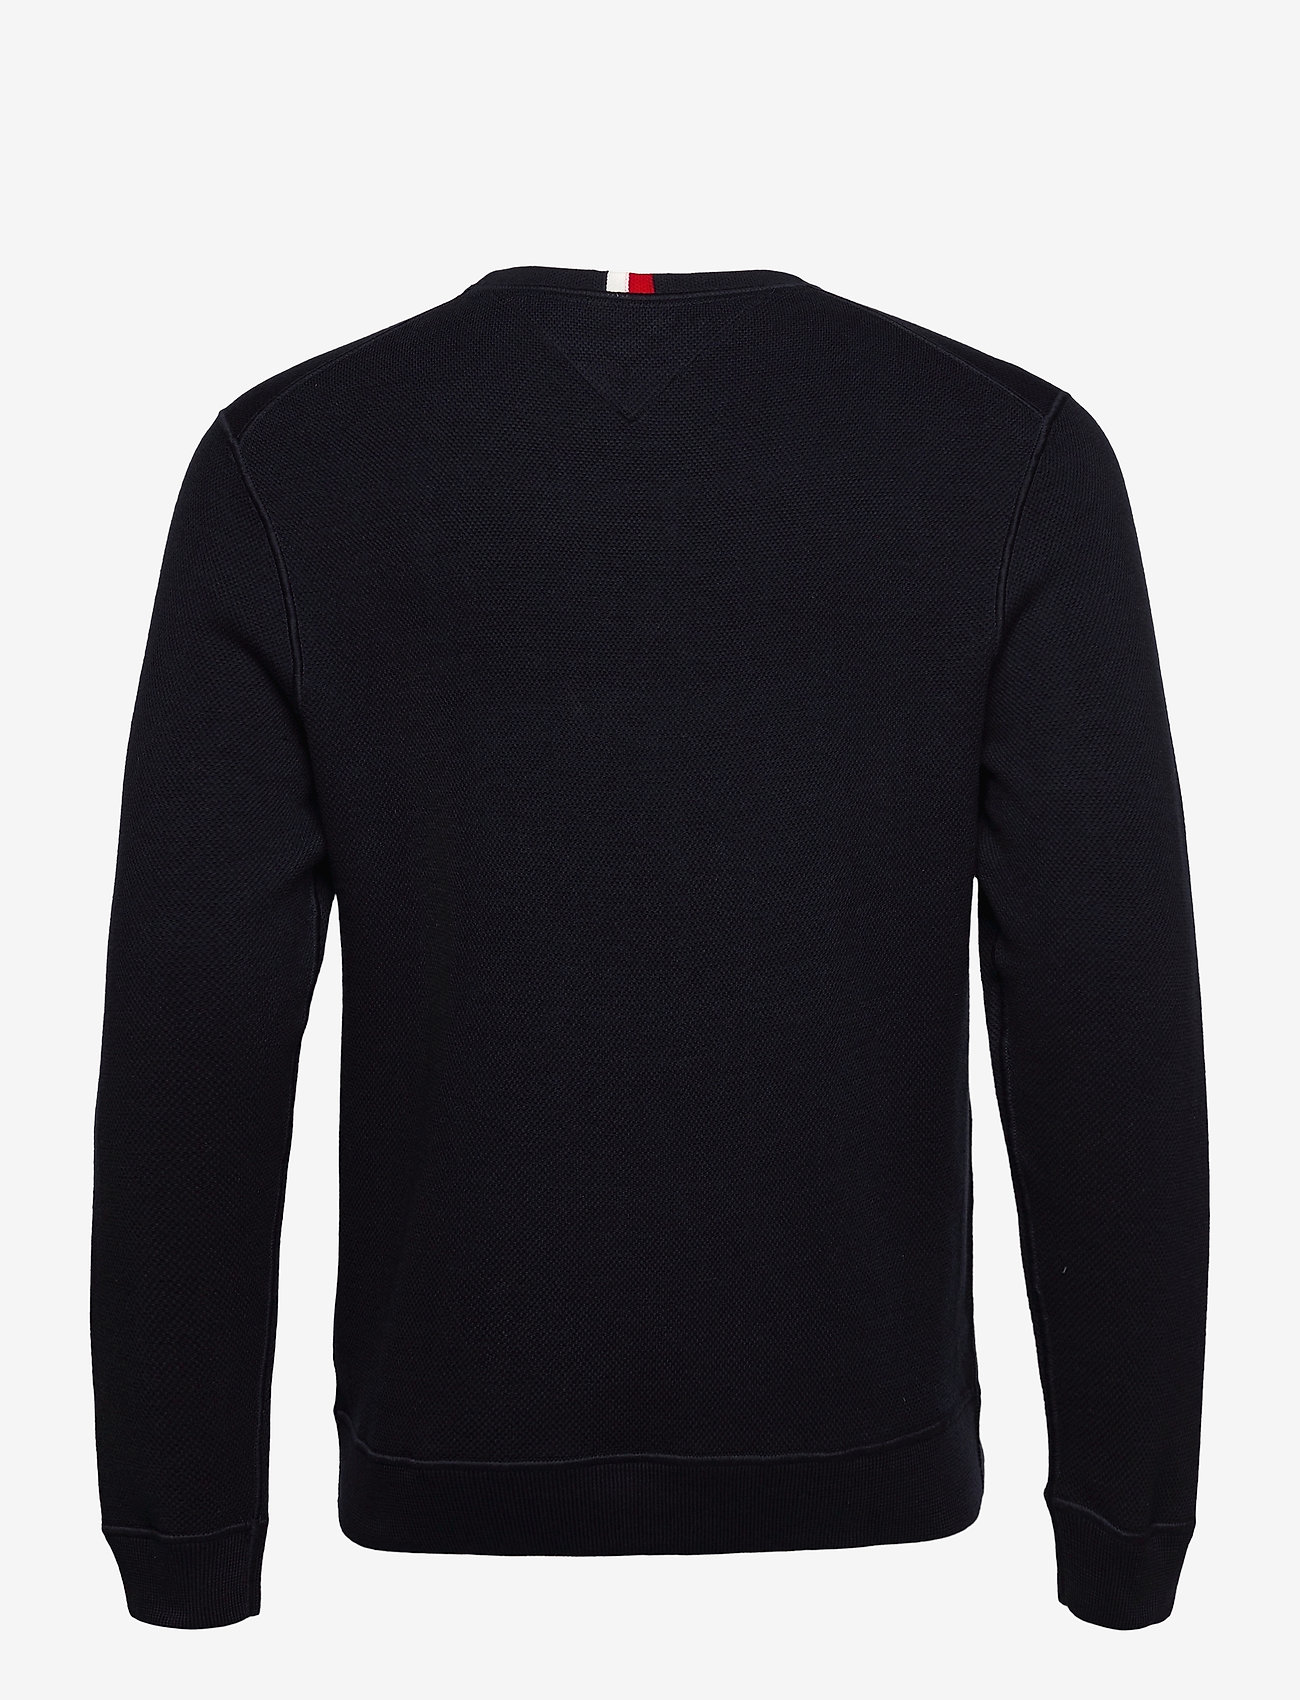 Tommy Hilfiger - STRUCTURED GRAPHIC SWEATER - desert sky - 1